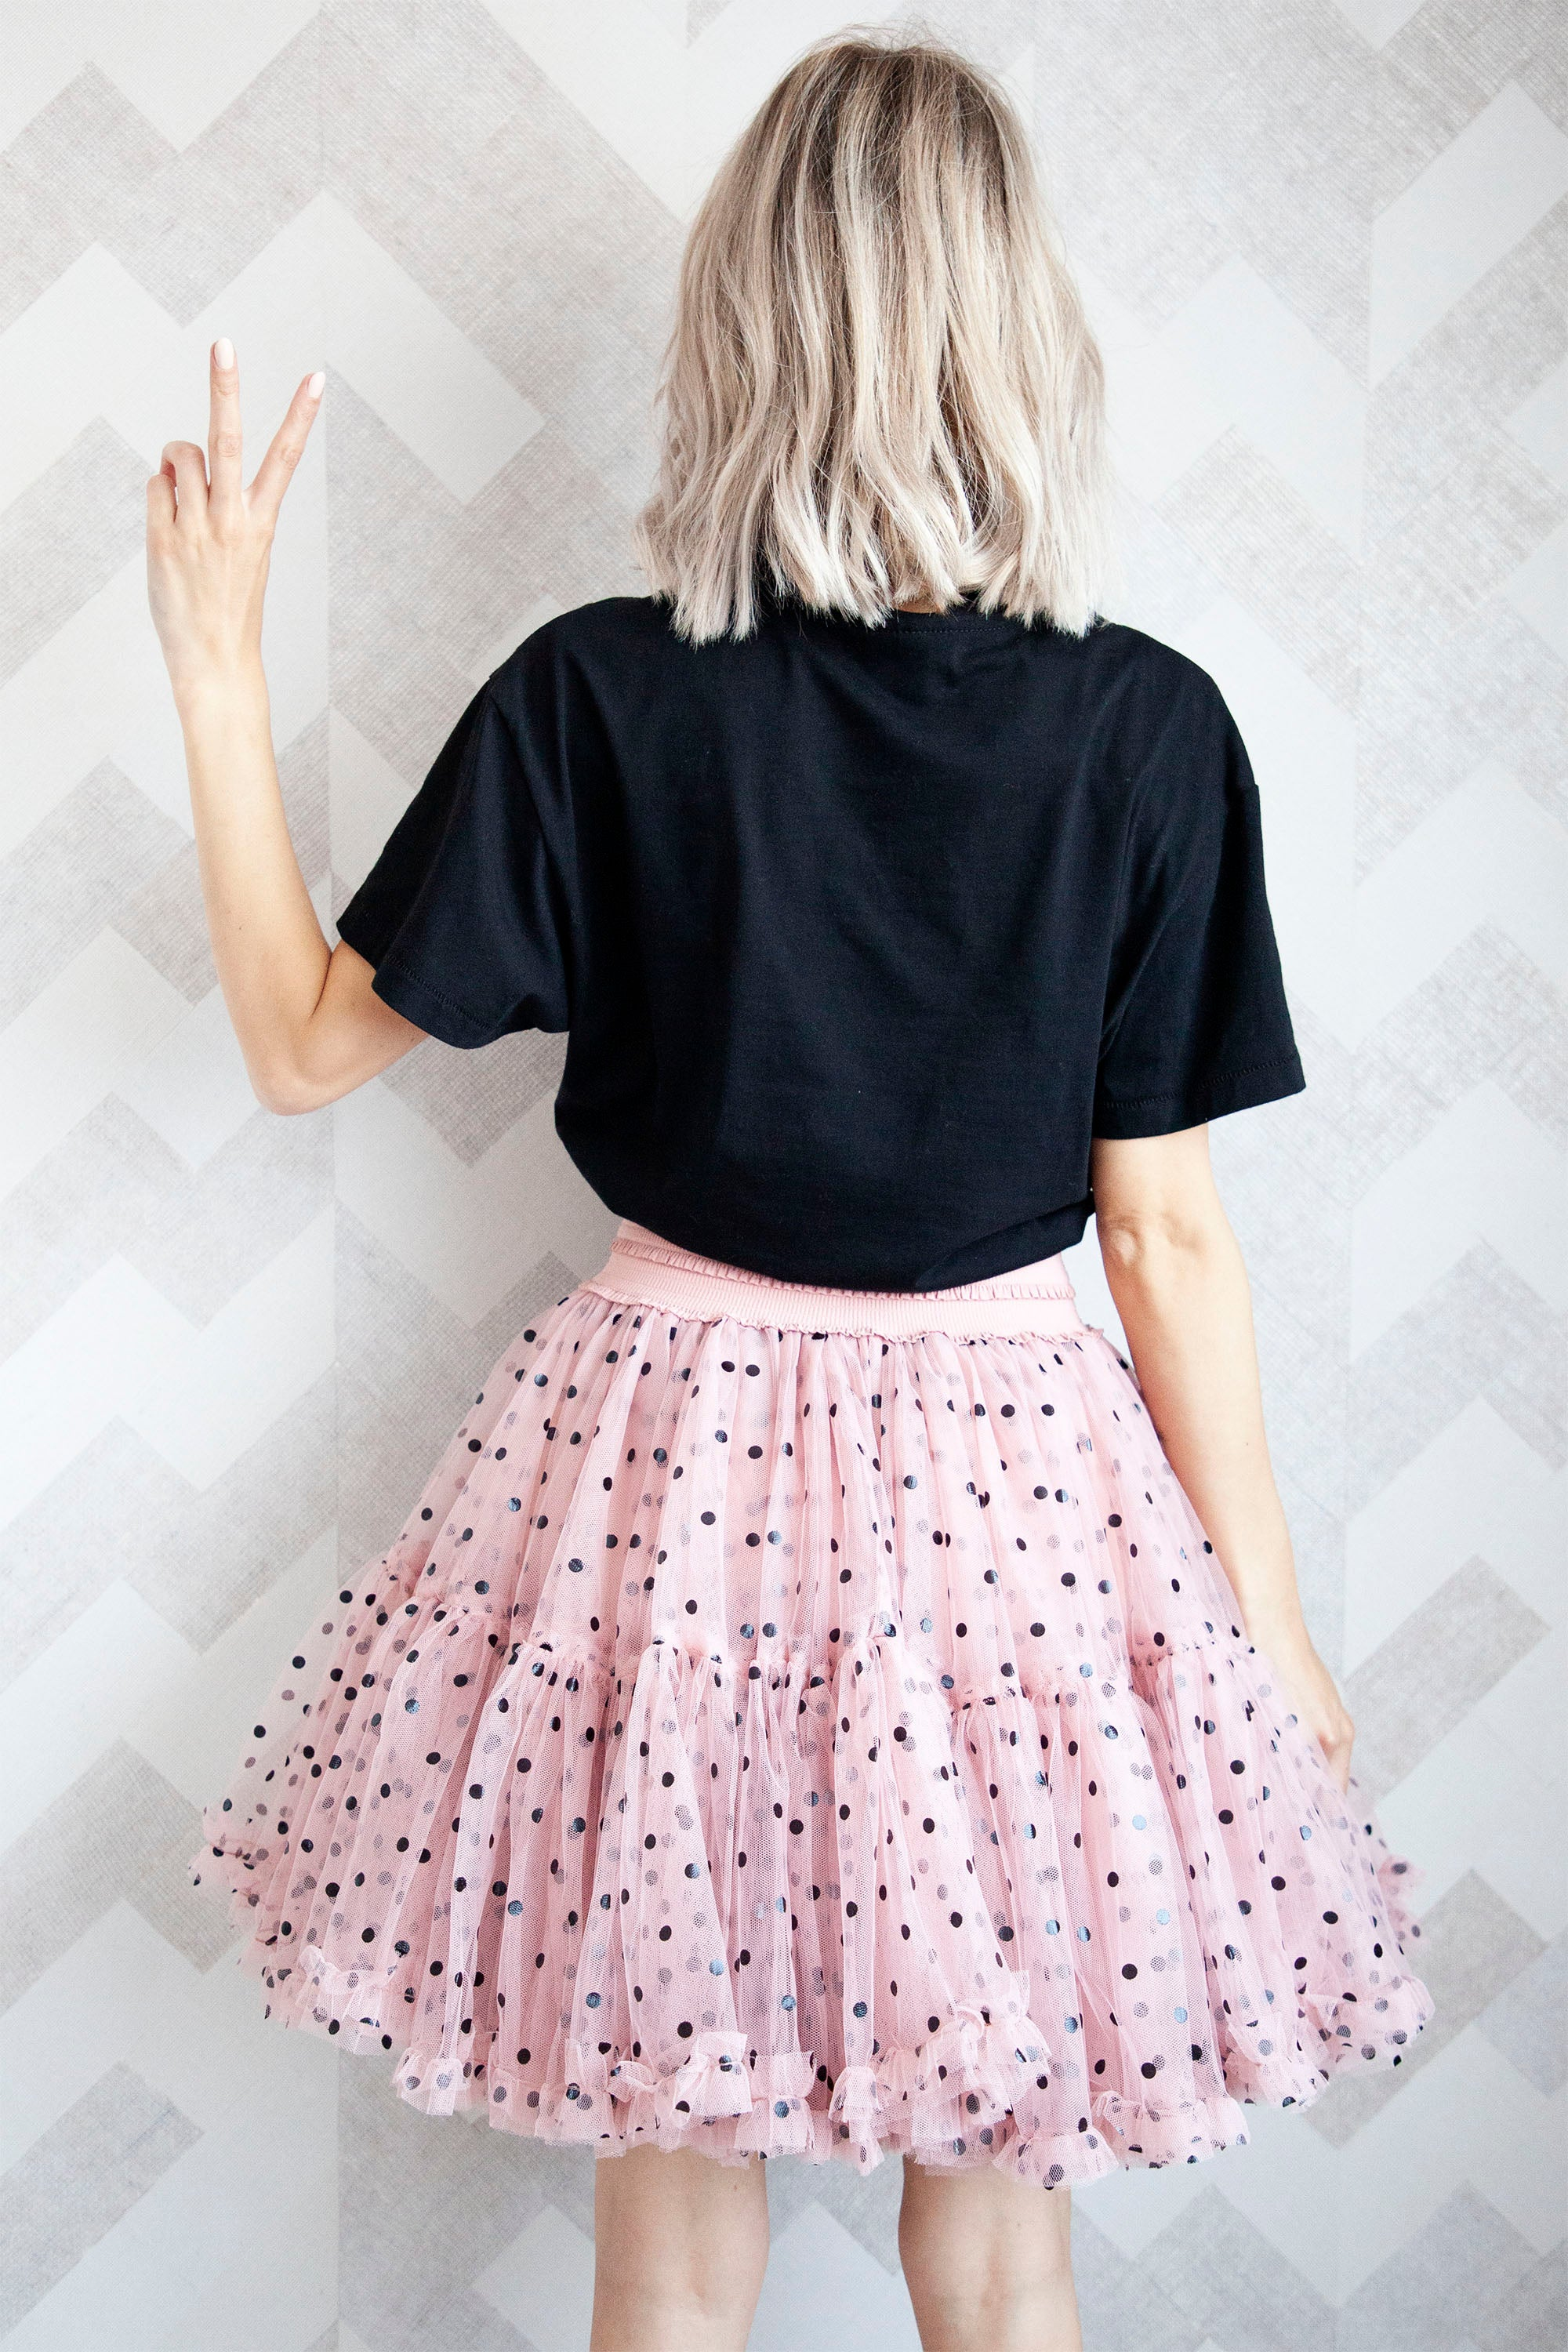 Follow Your Dreams Pink/Dots - Mini Rok